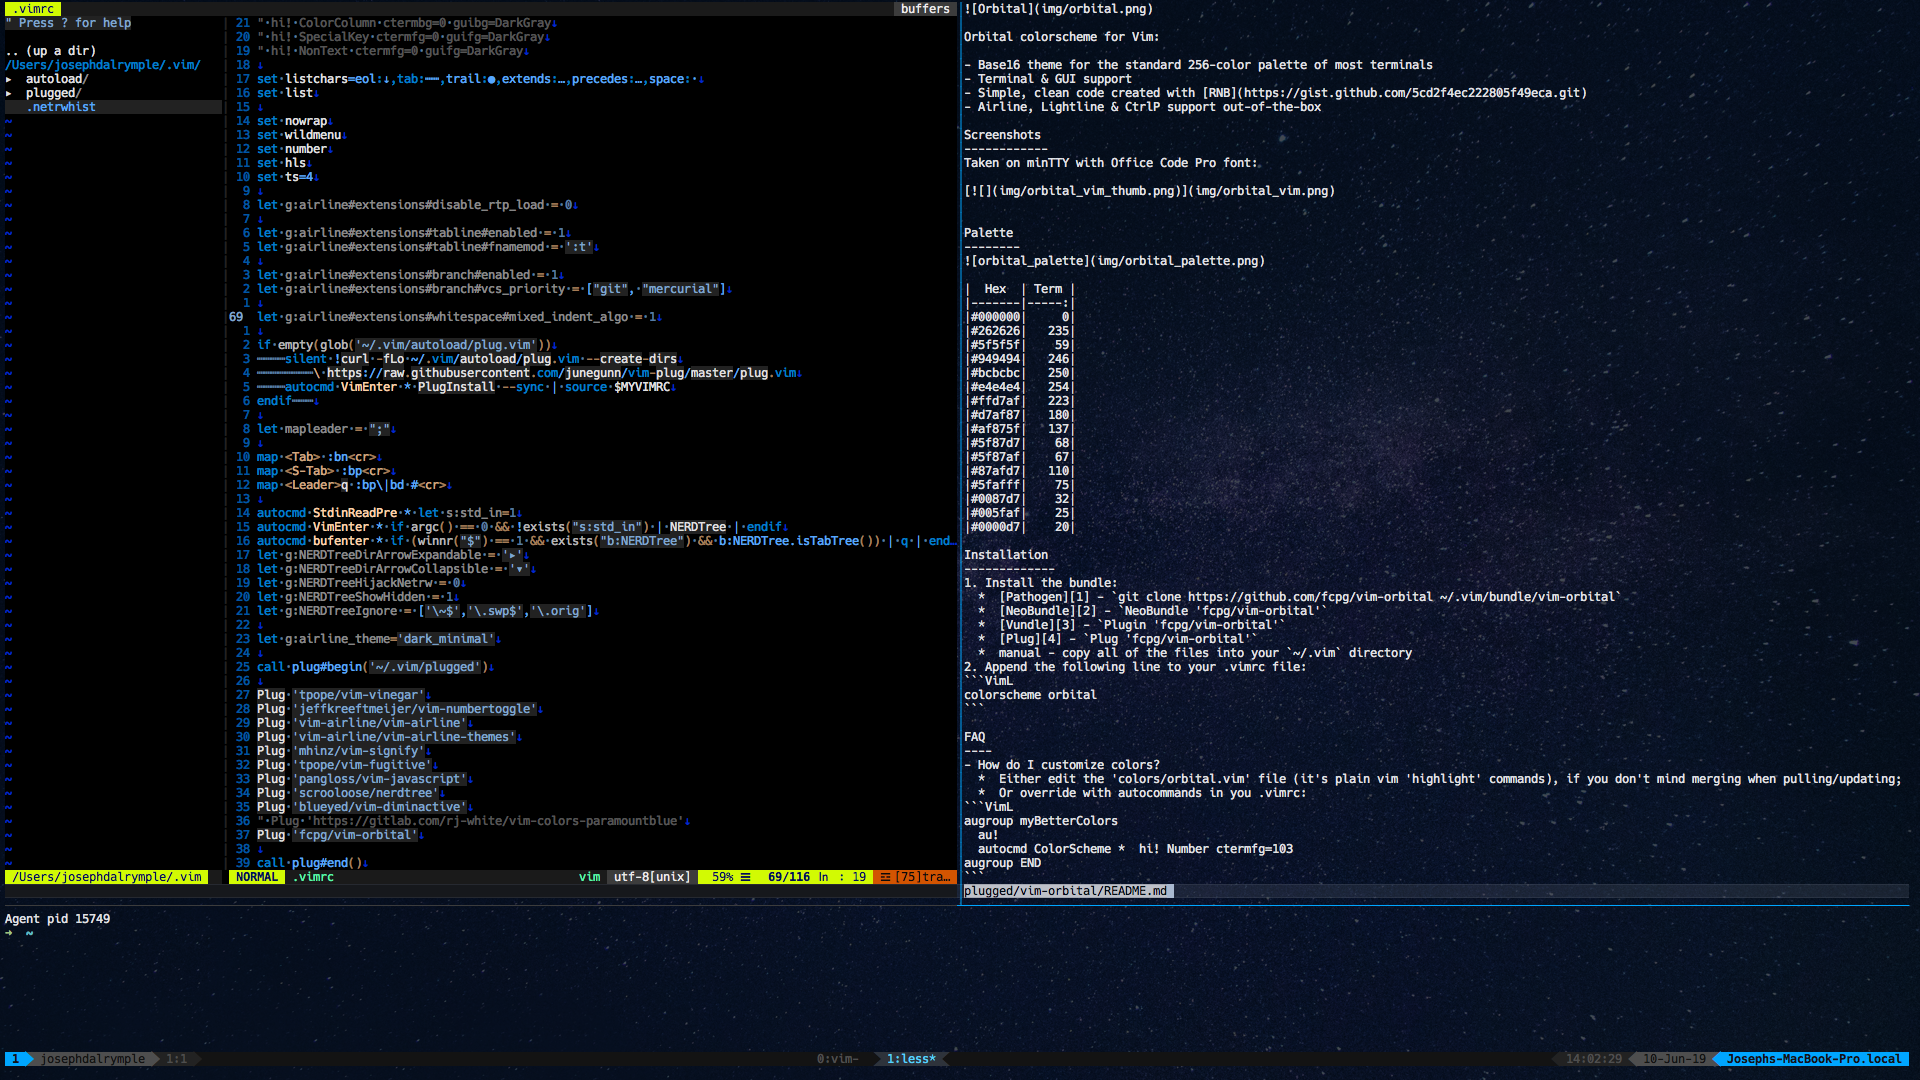 BUG: Overrides Terminal Background Color · Issue #4 · fcpg/vim